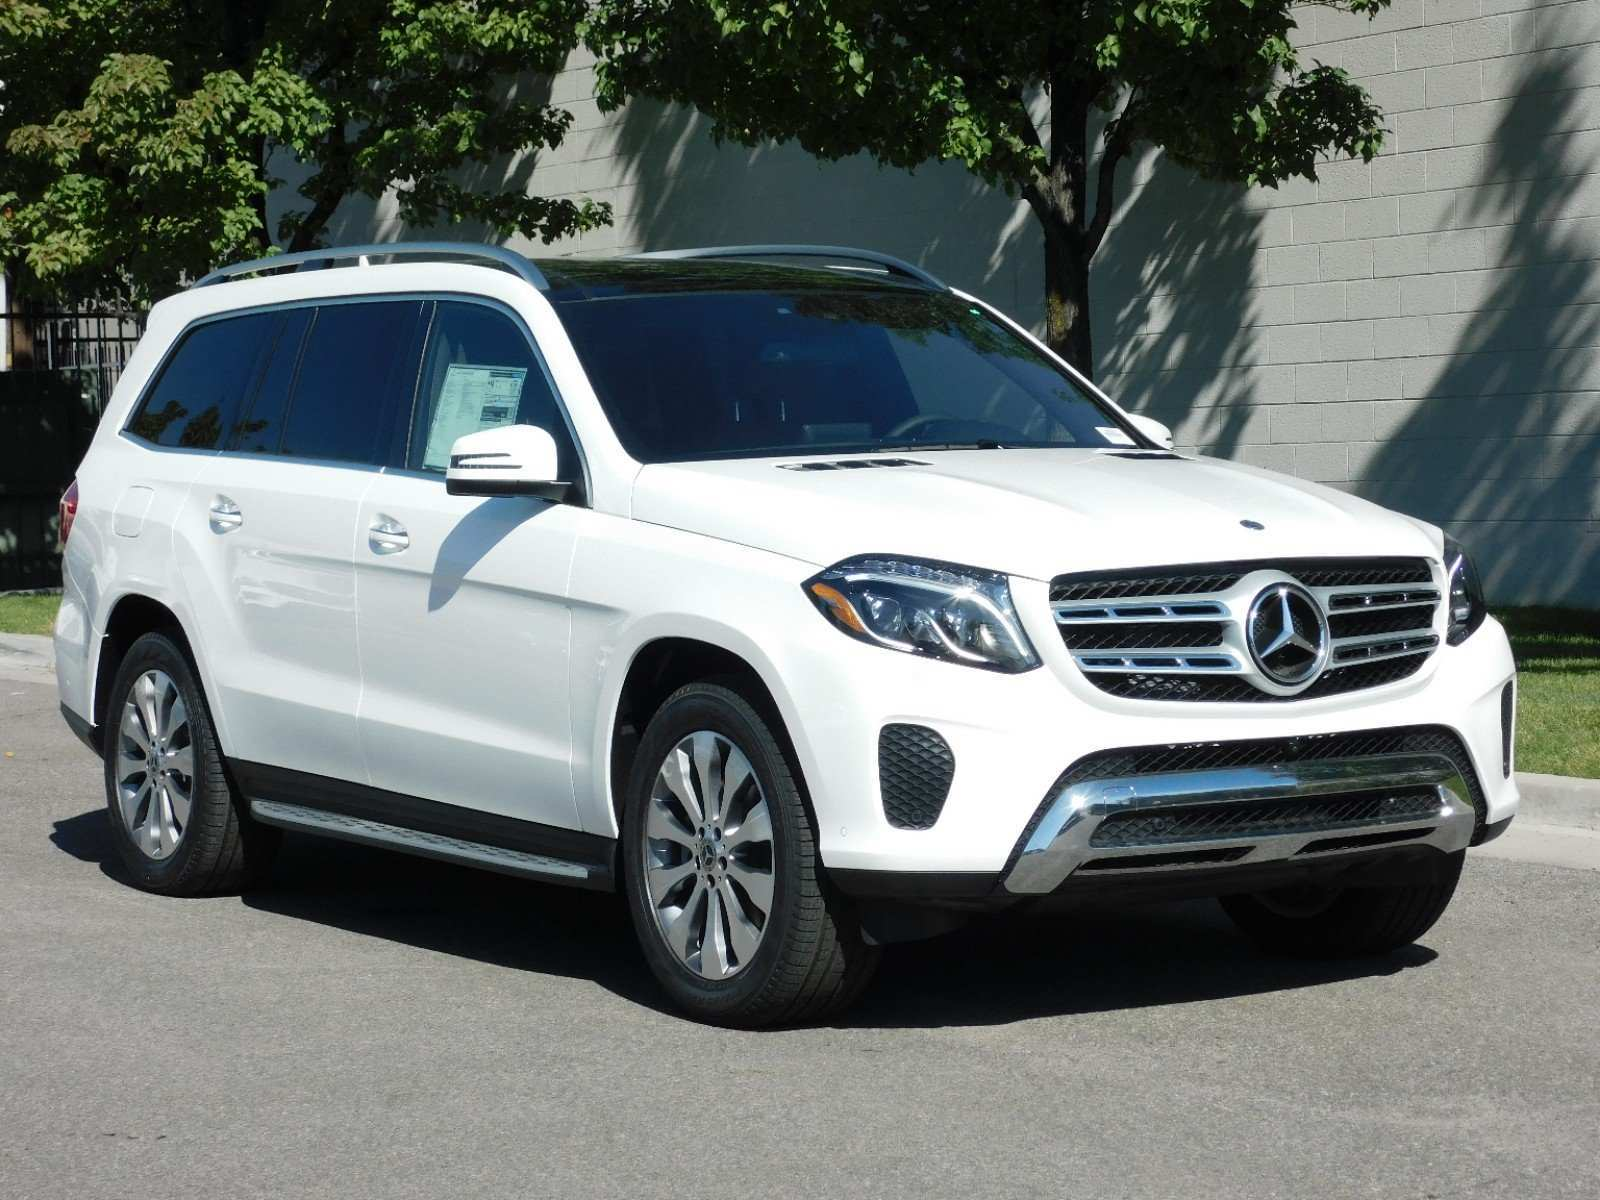 93 Concept of Gls Mercedes 2019 Redesign and Concept with Gls Mercedes 2019